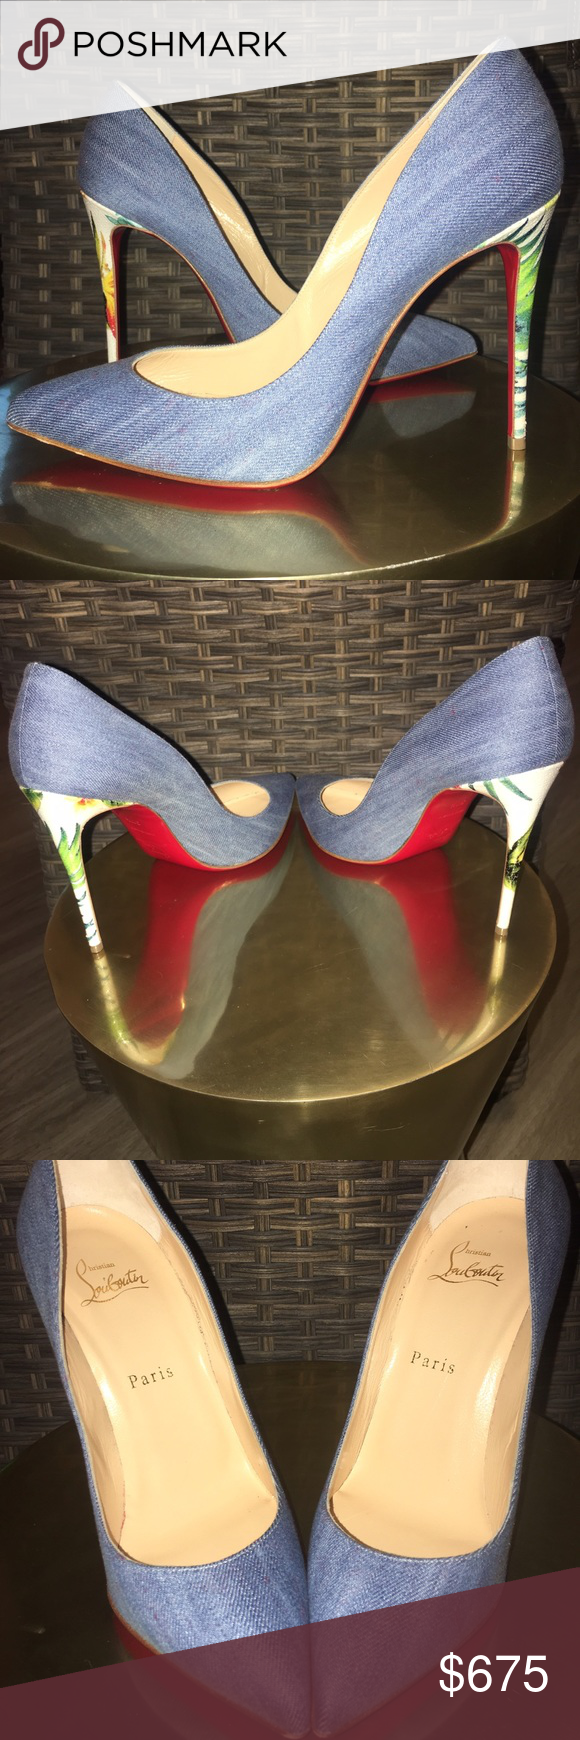 f871ad89669 LOUBOUTIN PIGALLE FOLLIES 100 JEAN CAL FHAWAII Christian Louboutin s  PIGALLE FOLLIES are styled with a